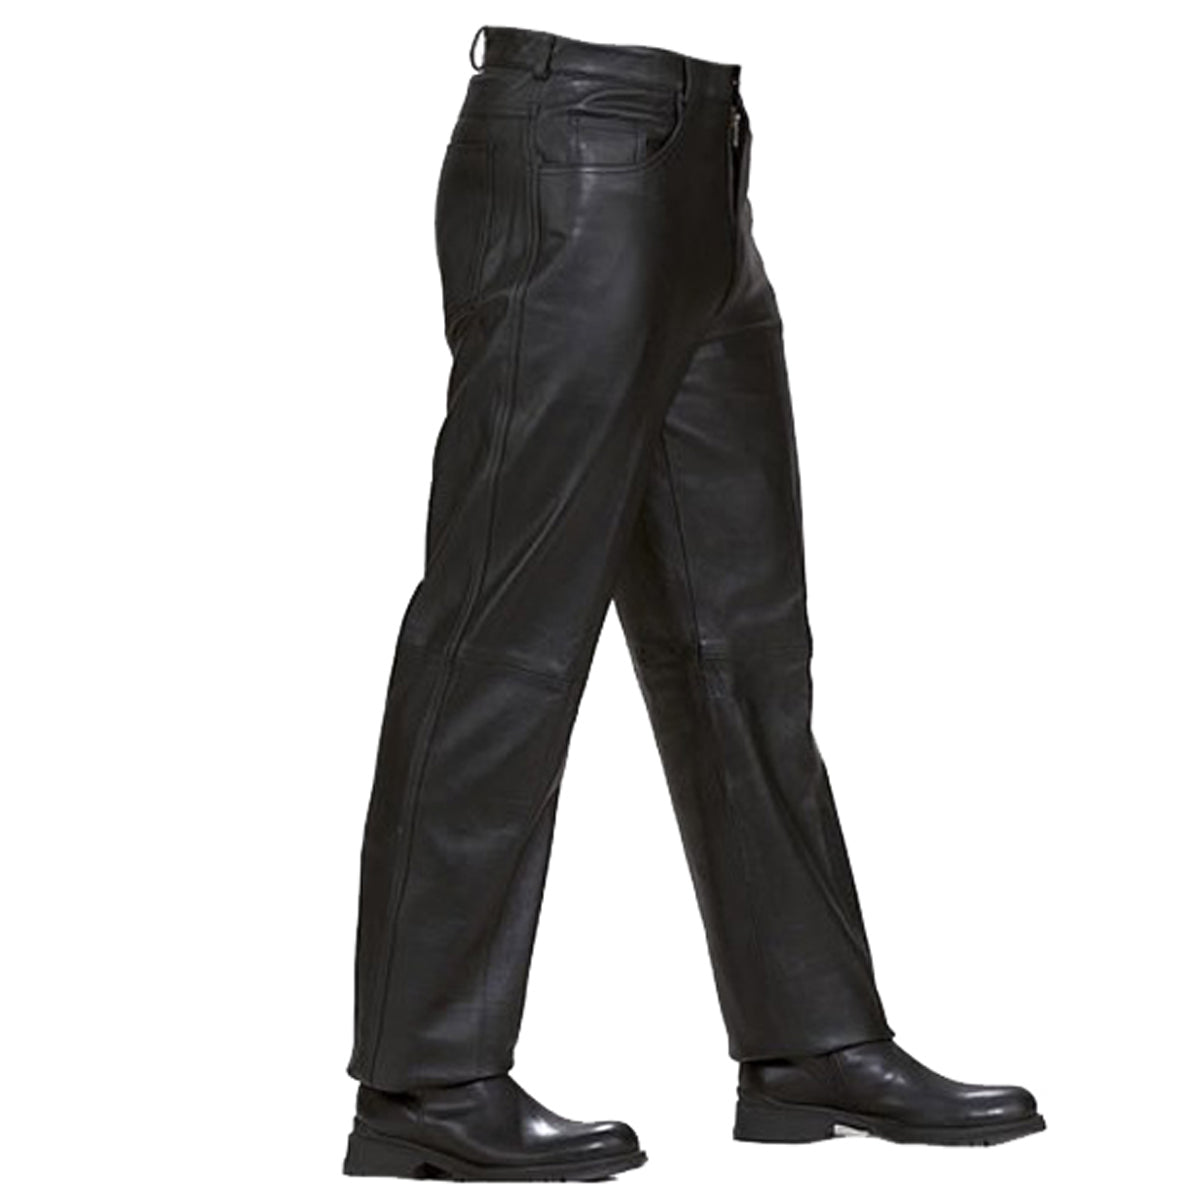 43e025653cd5b7 LP500 Jean Style Leather Pants – Vance Leather